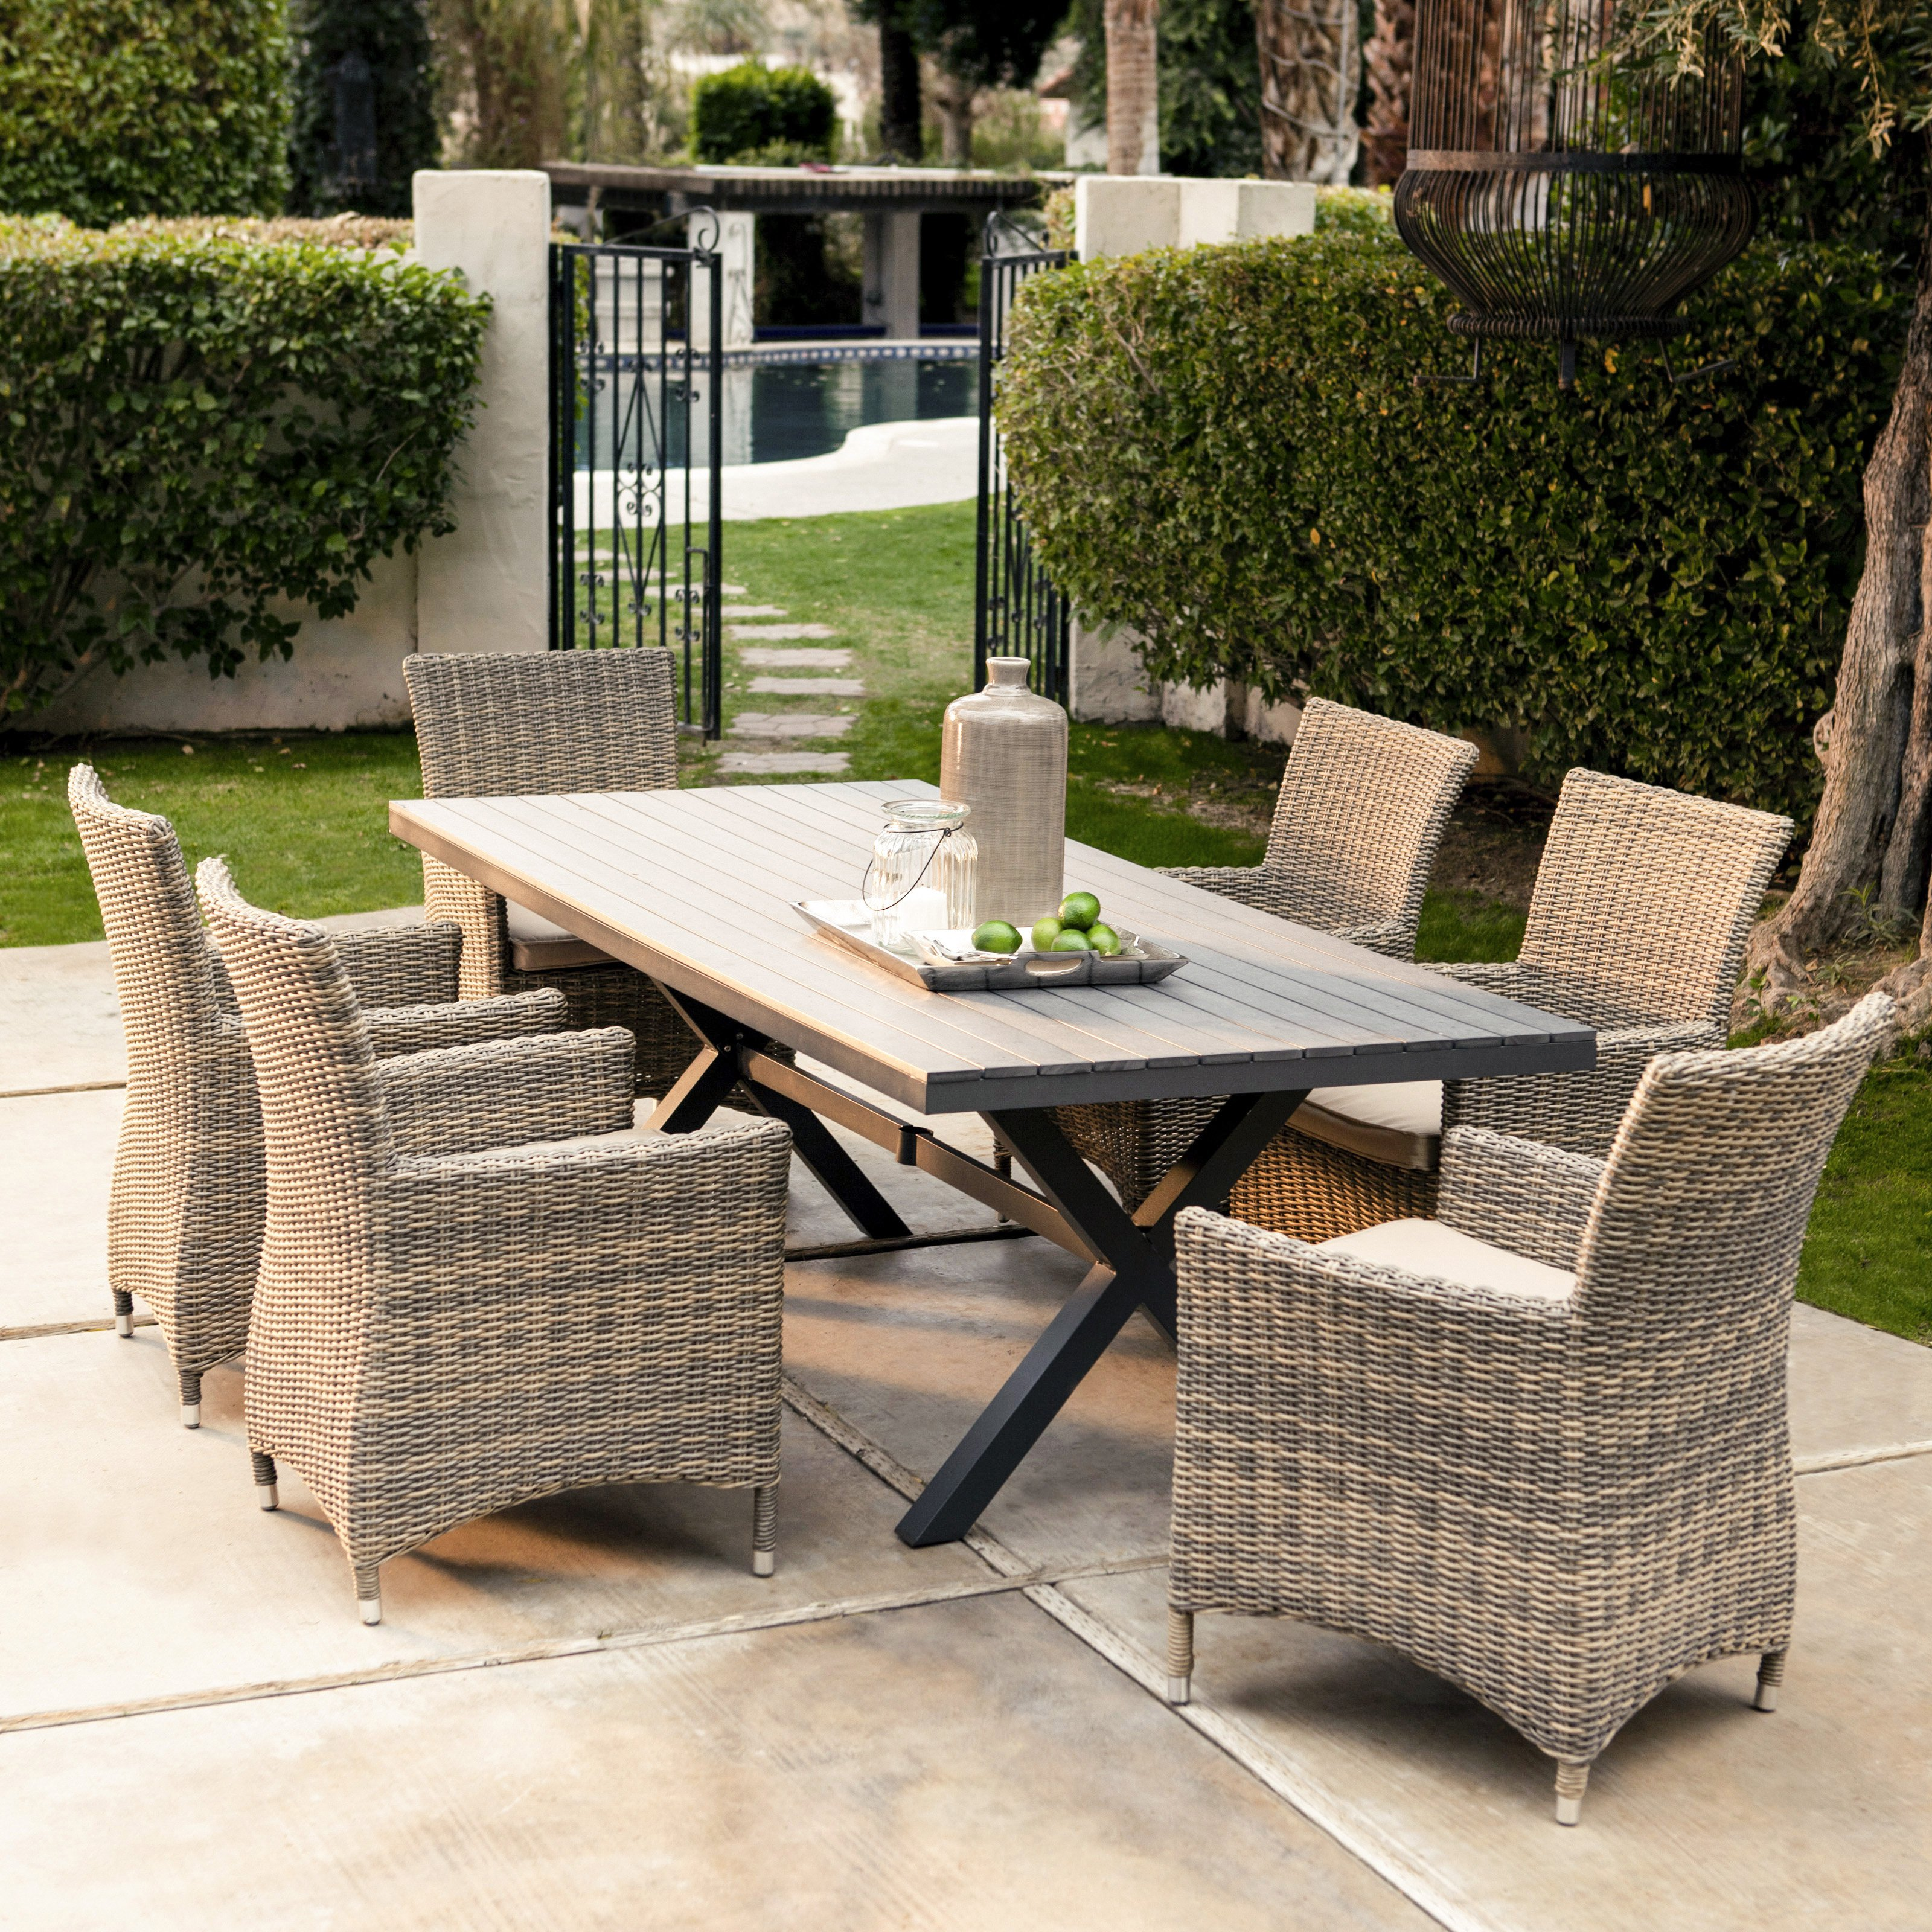 Classy Patio Dining Sets for a great Dine